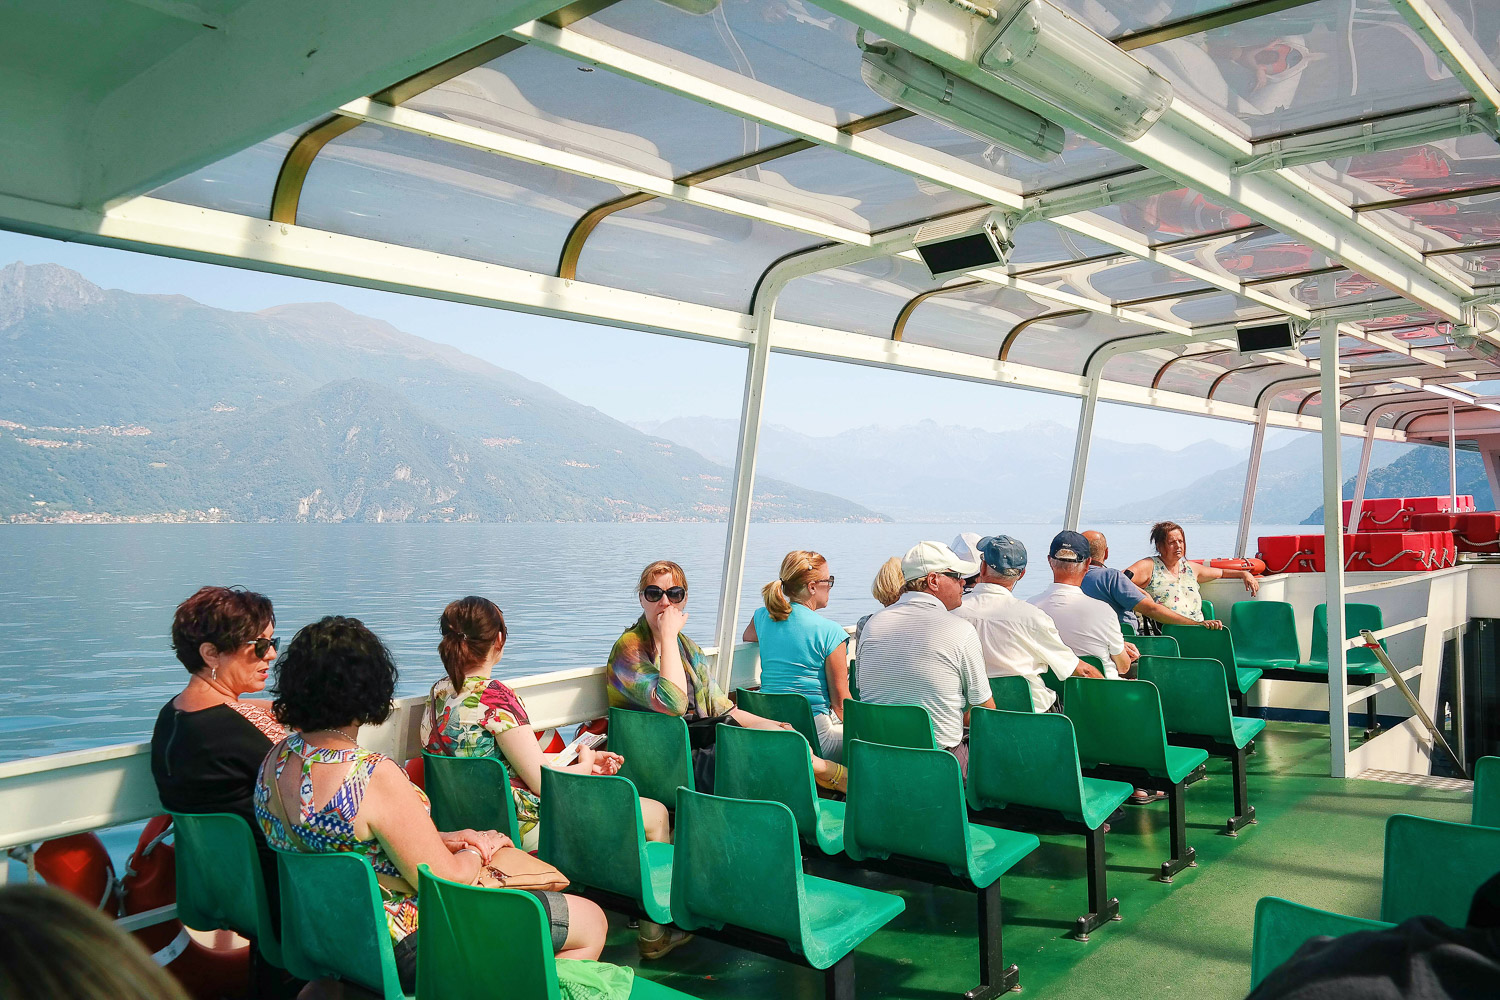 A picturesque ferry ride on Lake Como